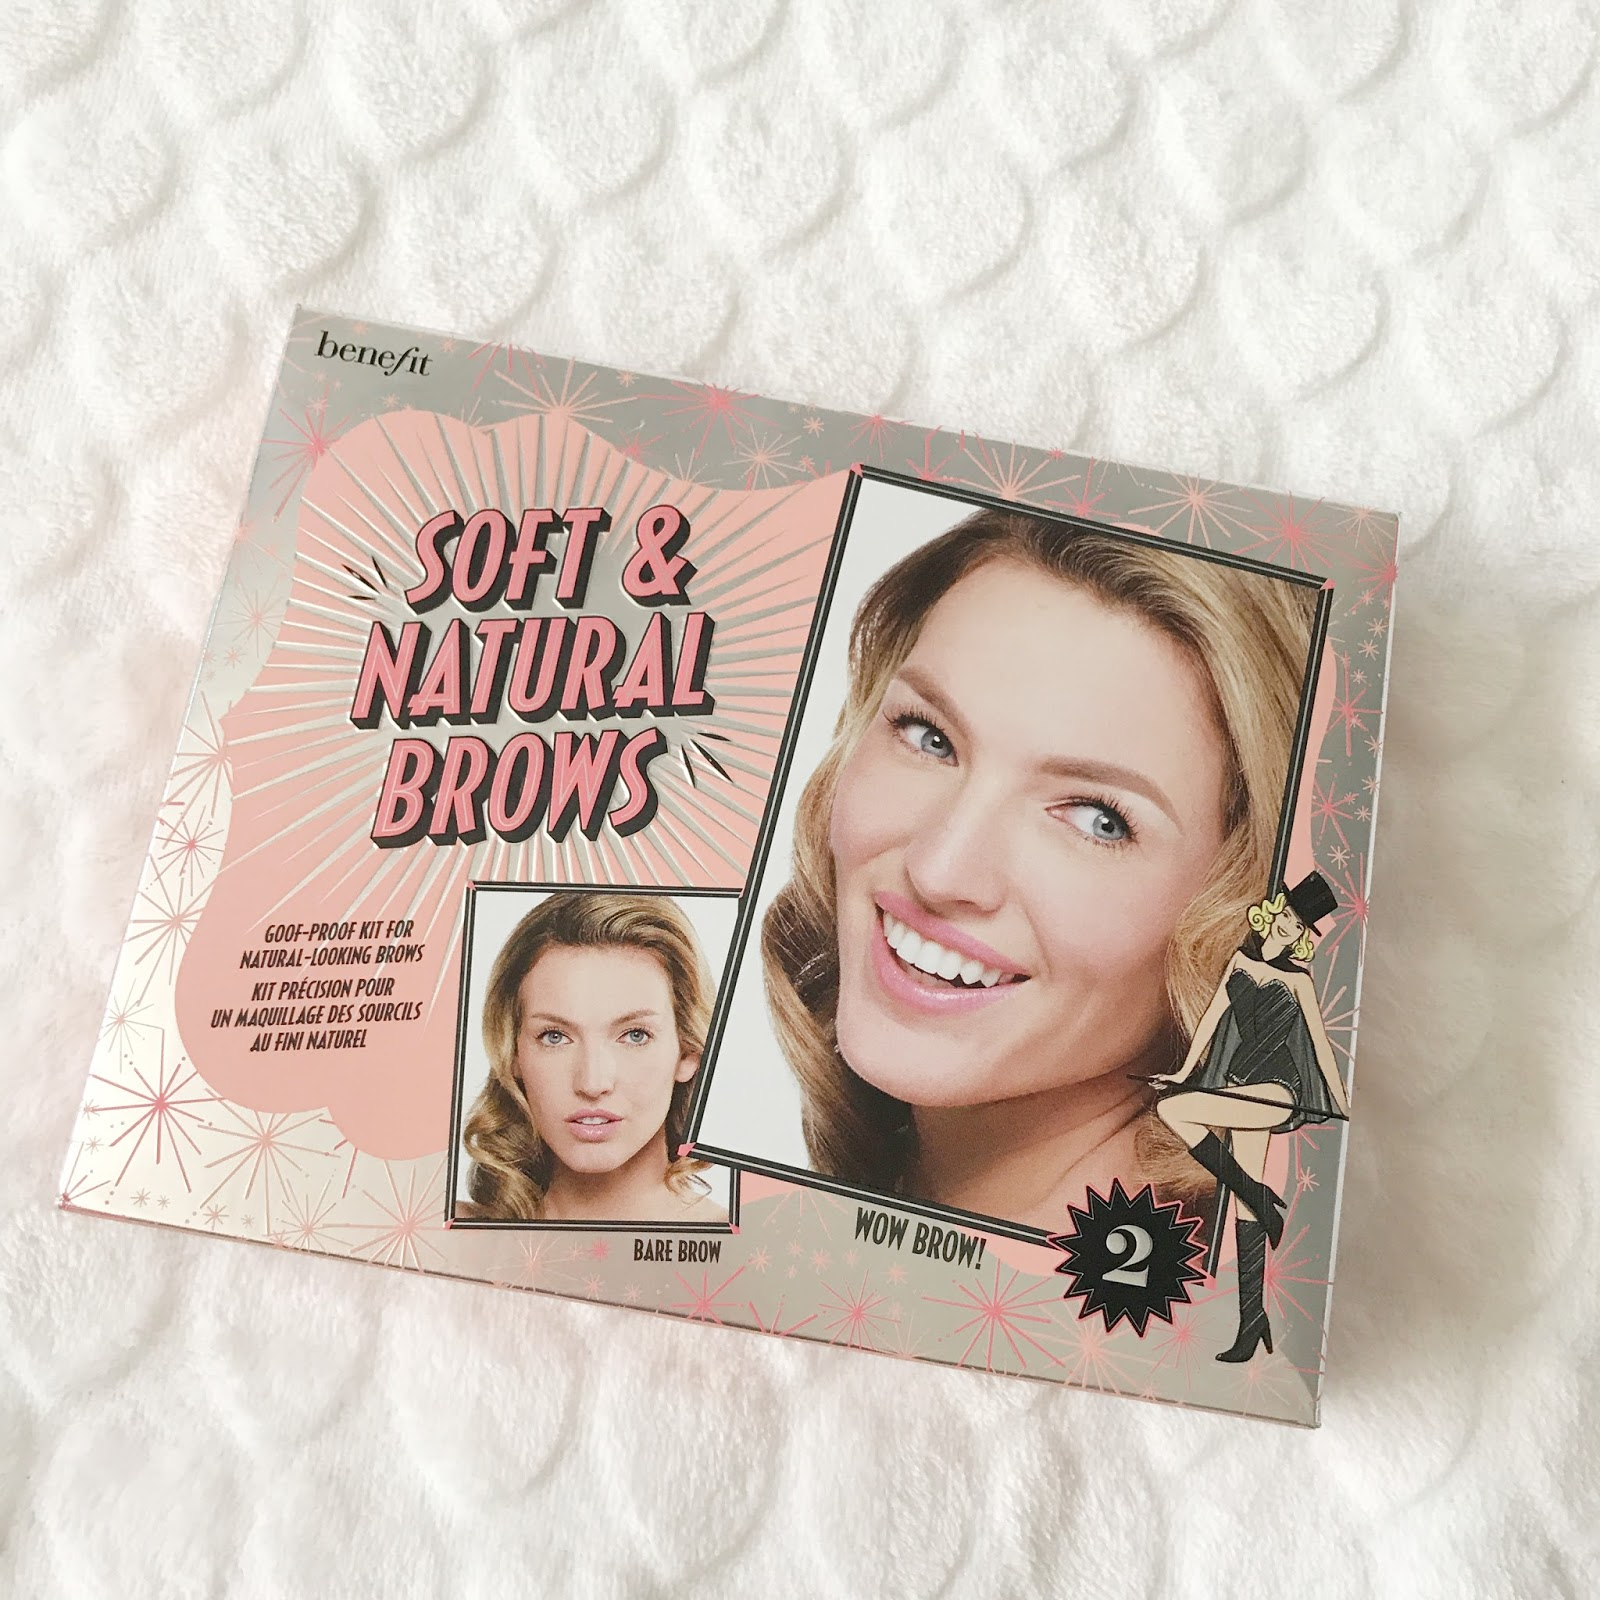 Benefit Soft & Natural Brows Set Review